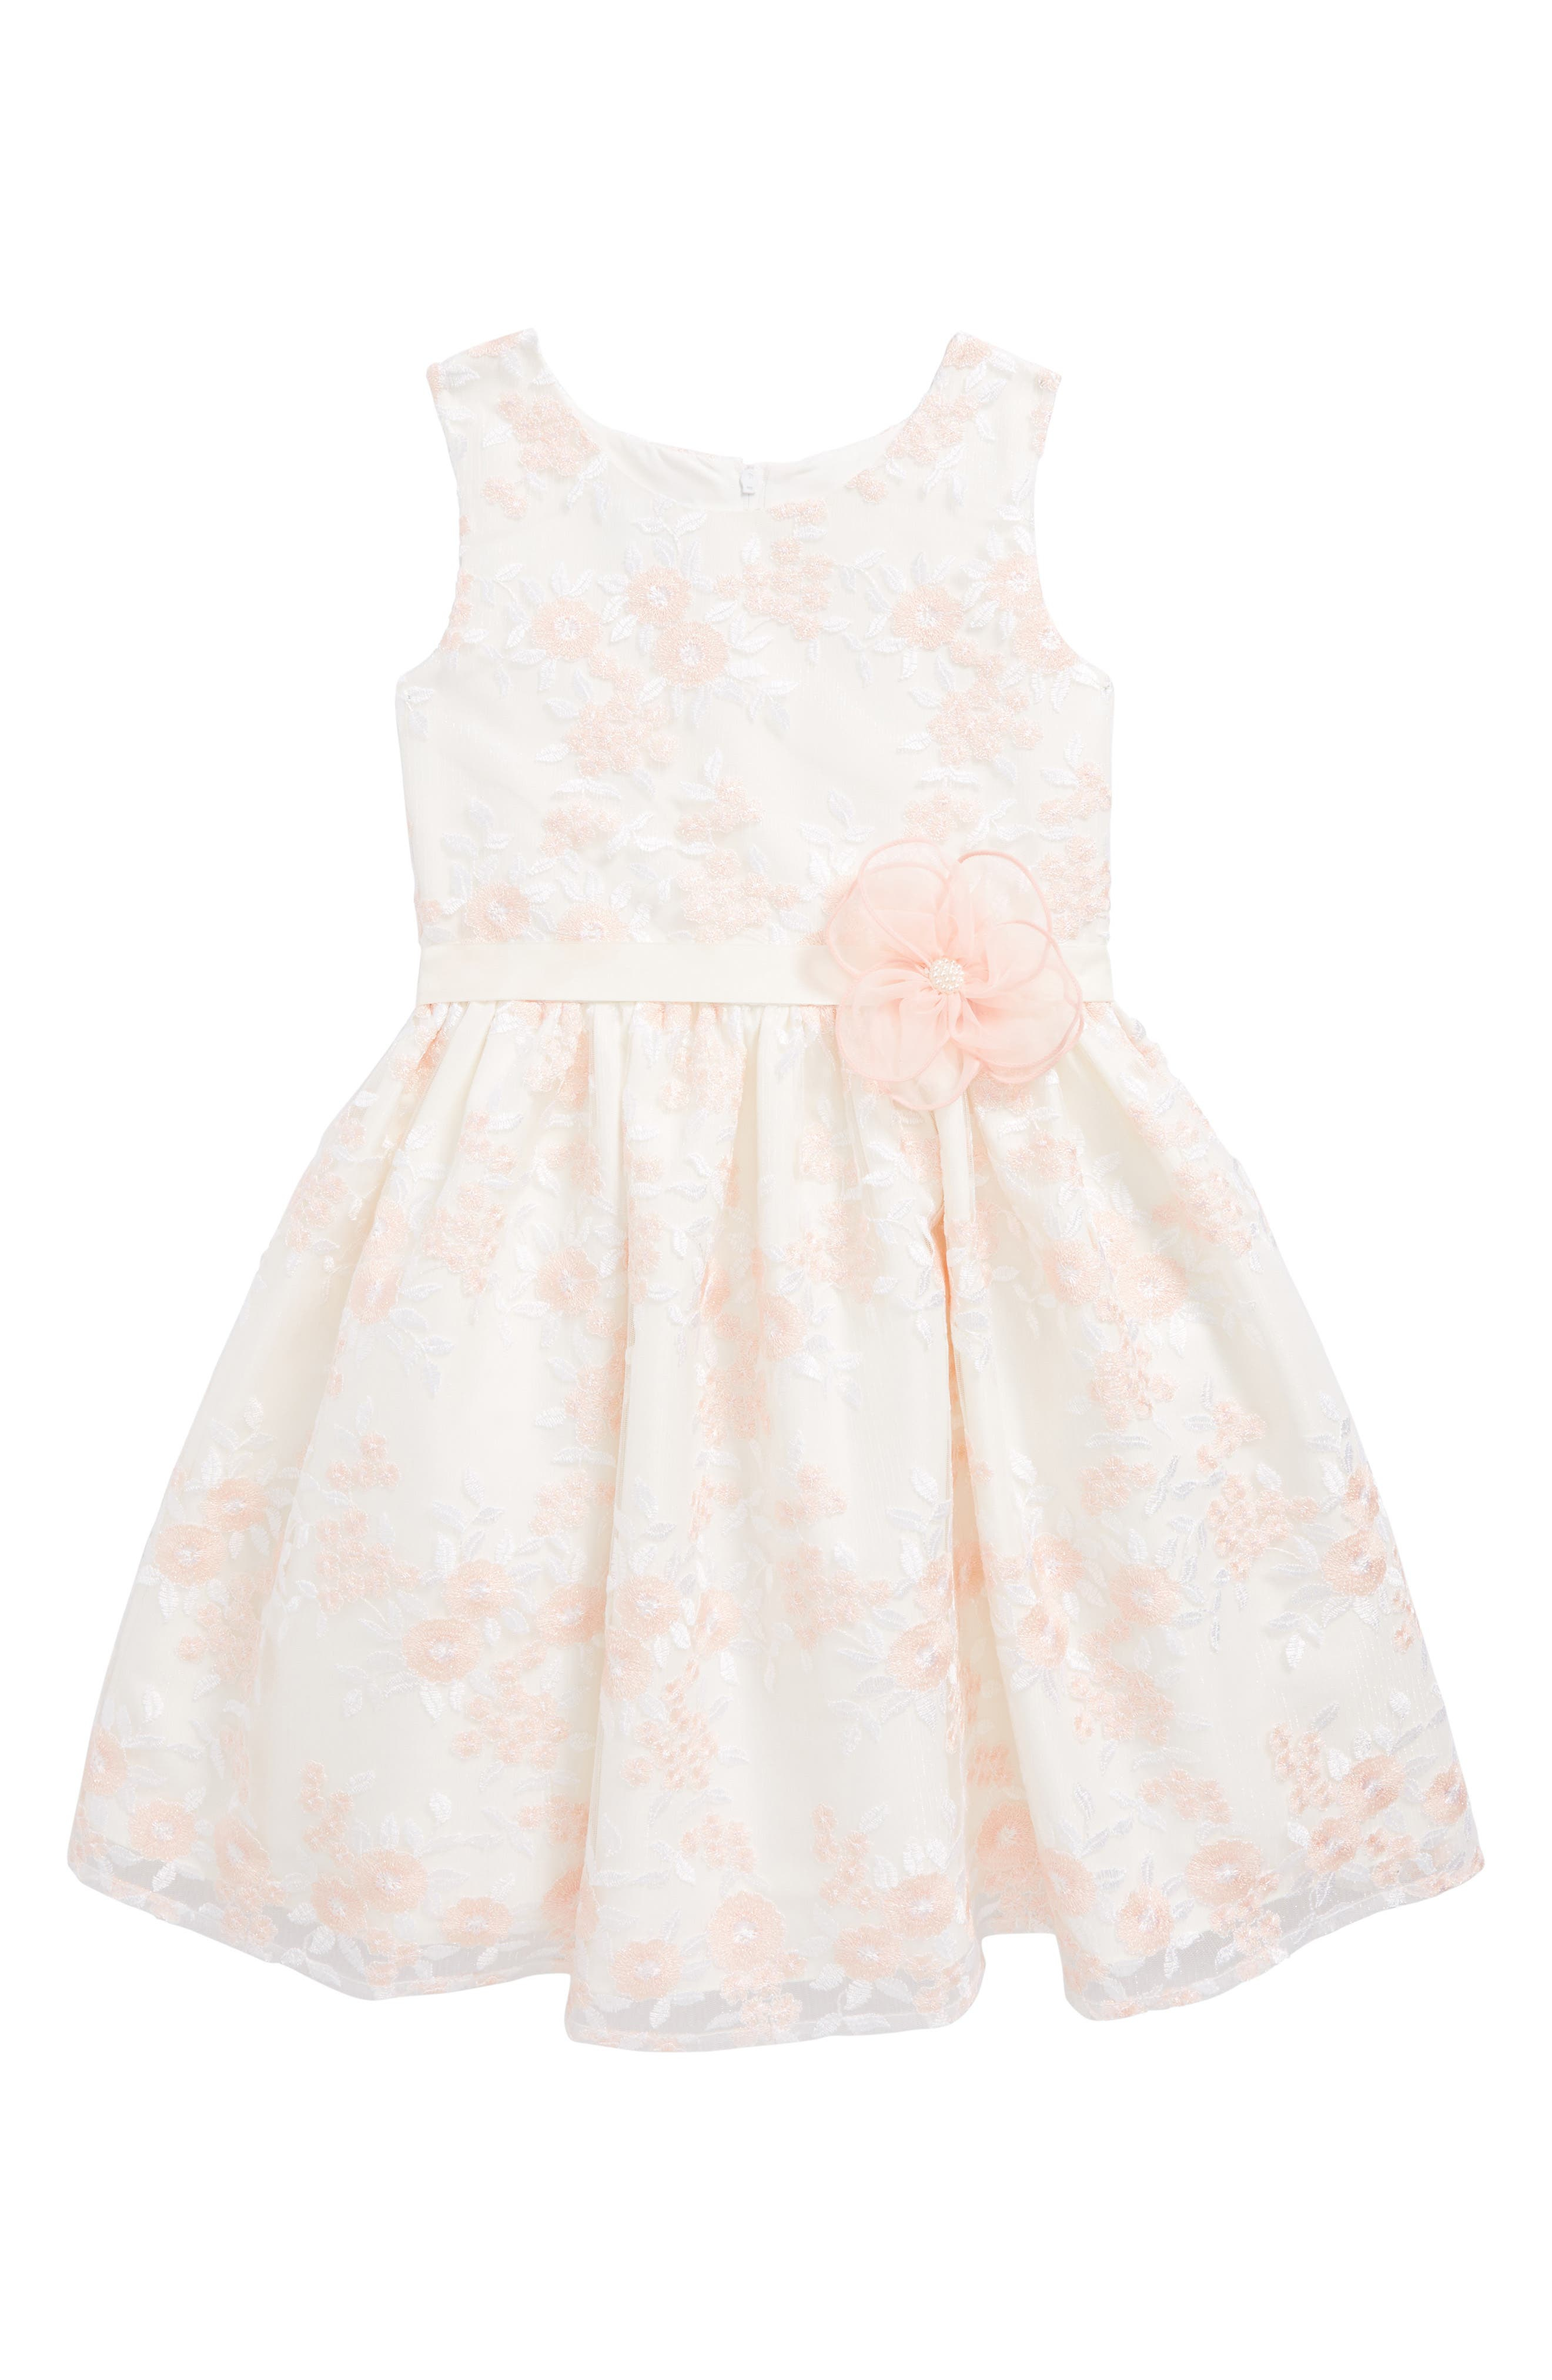 Embroidered Tulle Dress,                         Main,                         color, White/ Pink